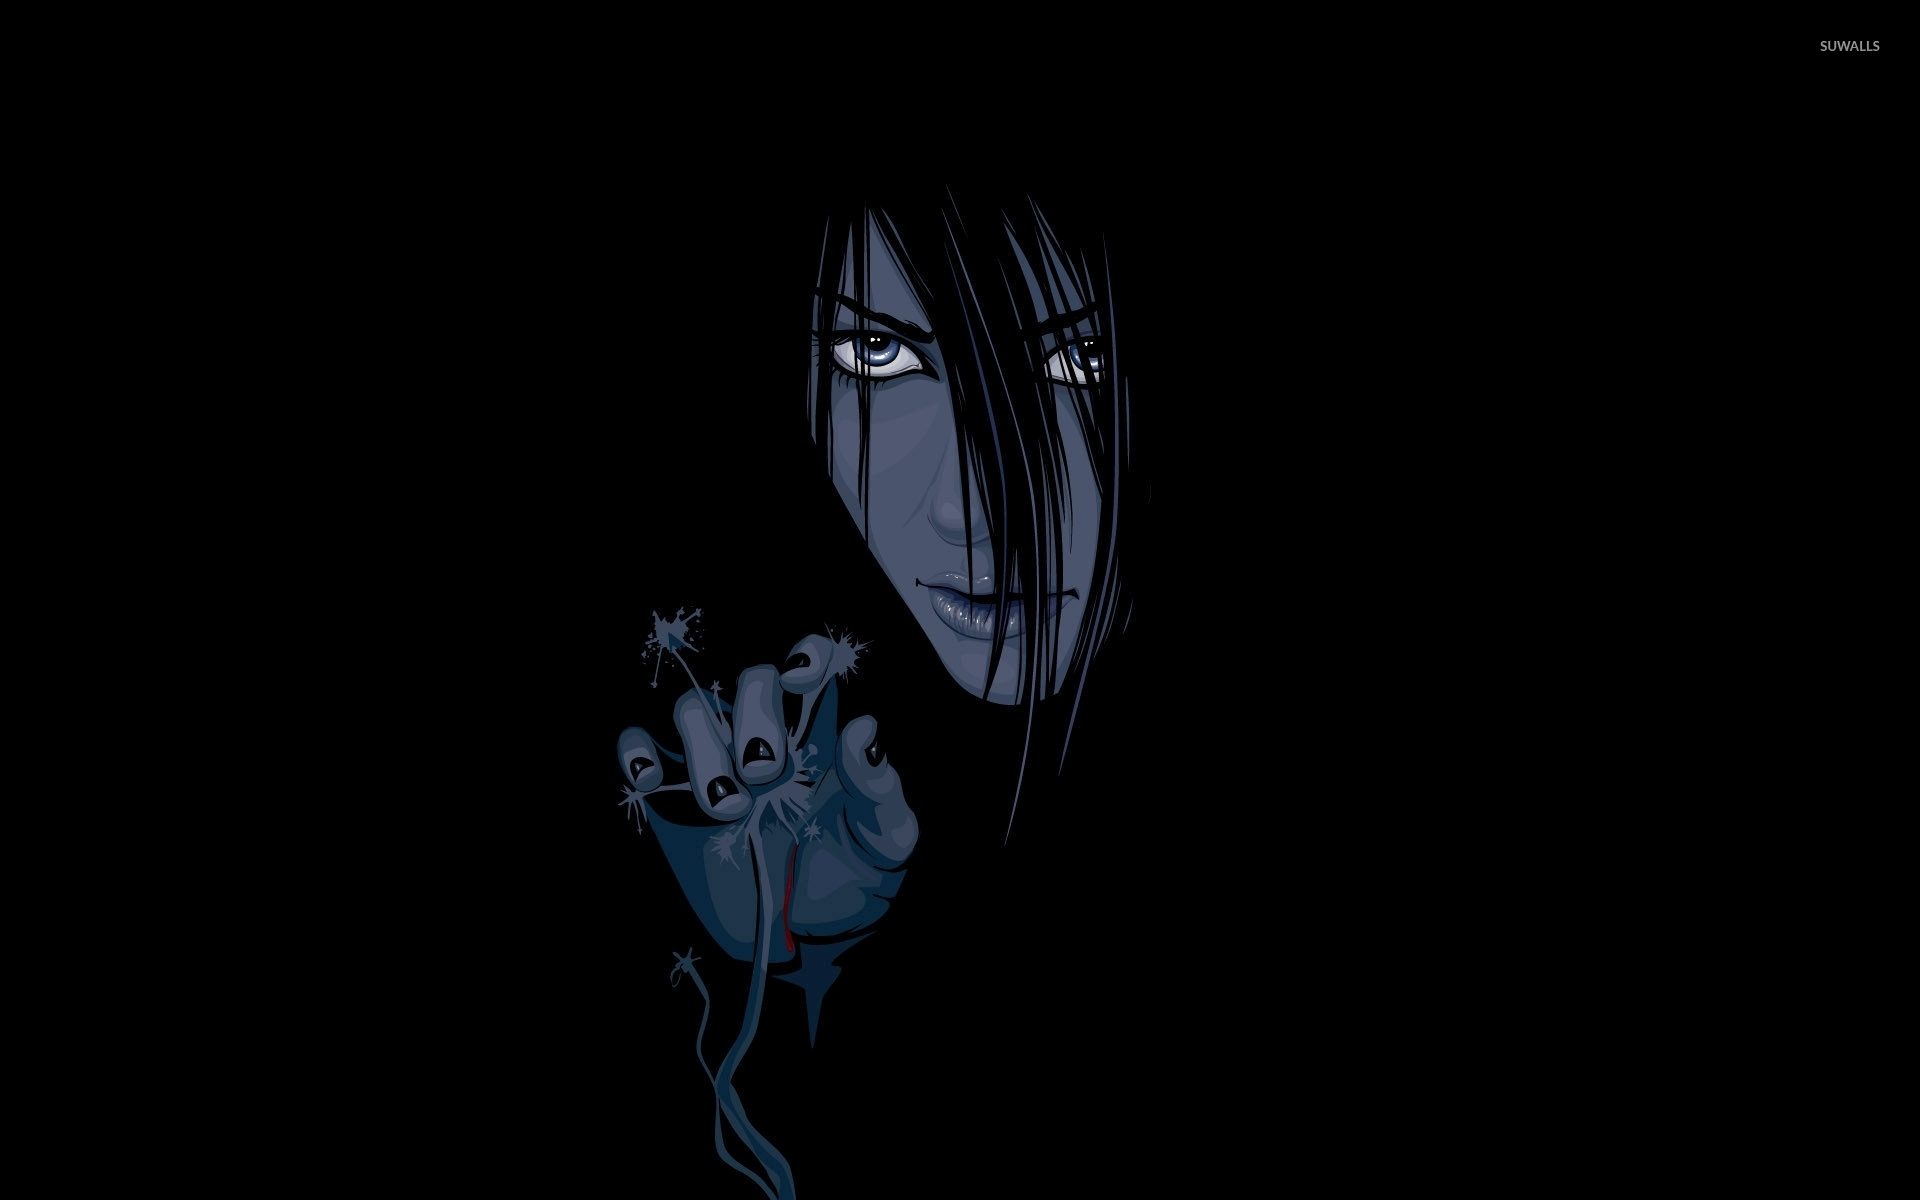 Orochimaru appearingfr... Orochimaru Wallpaper Desktop